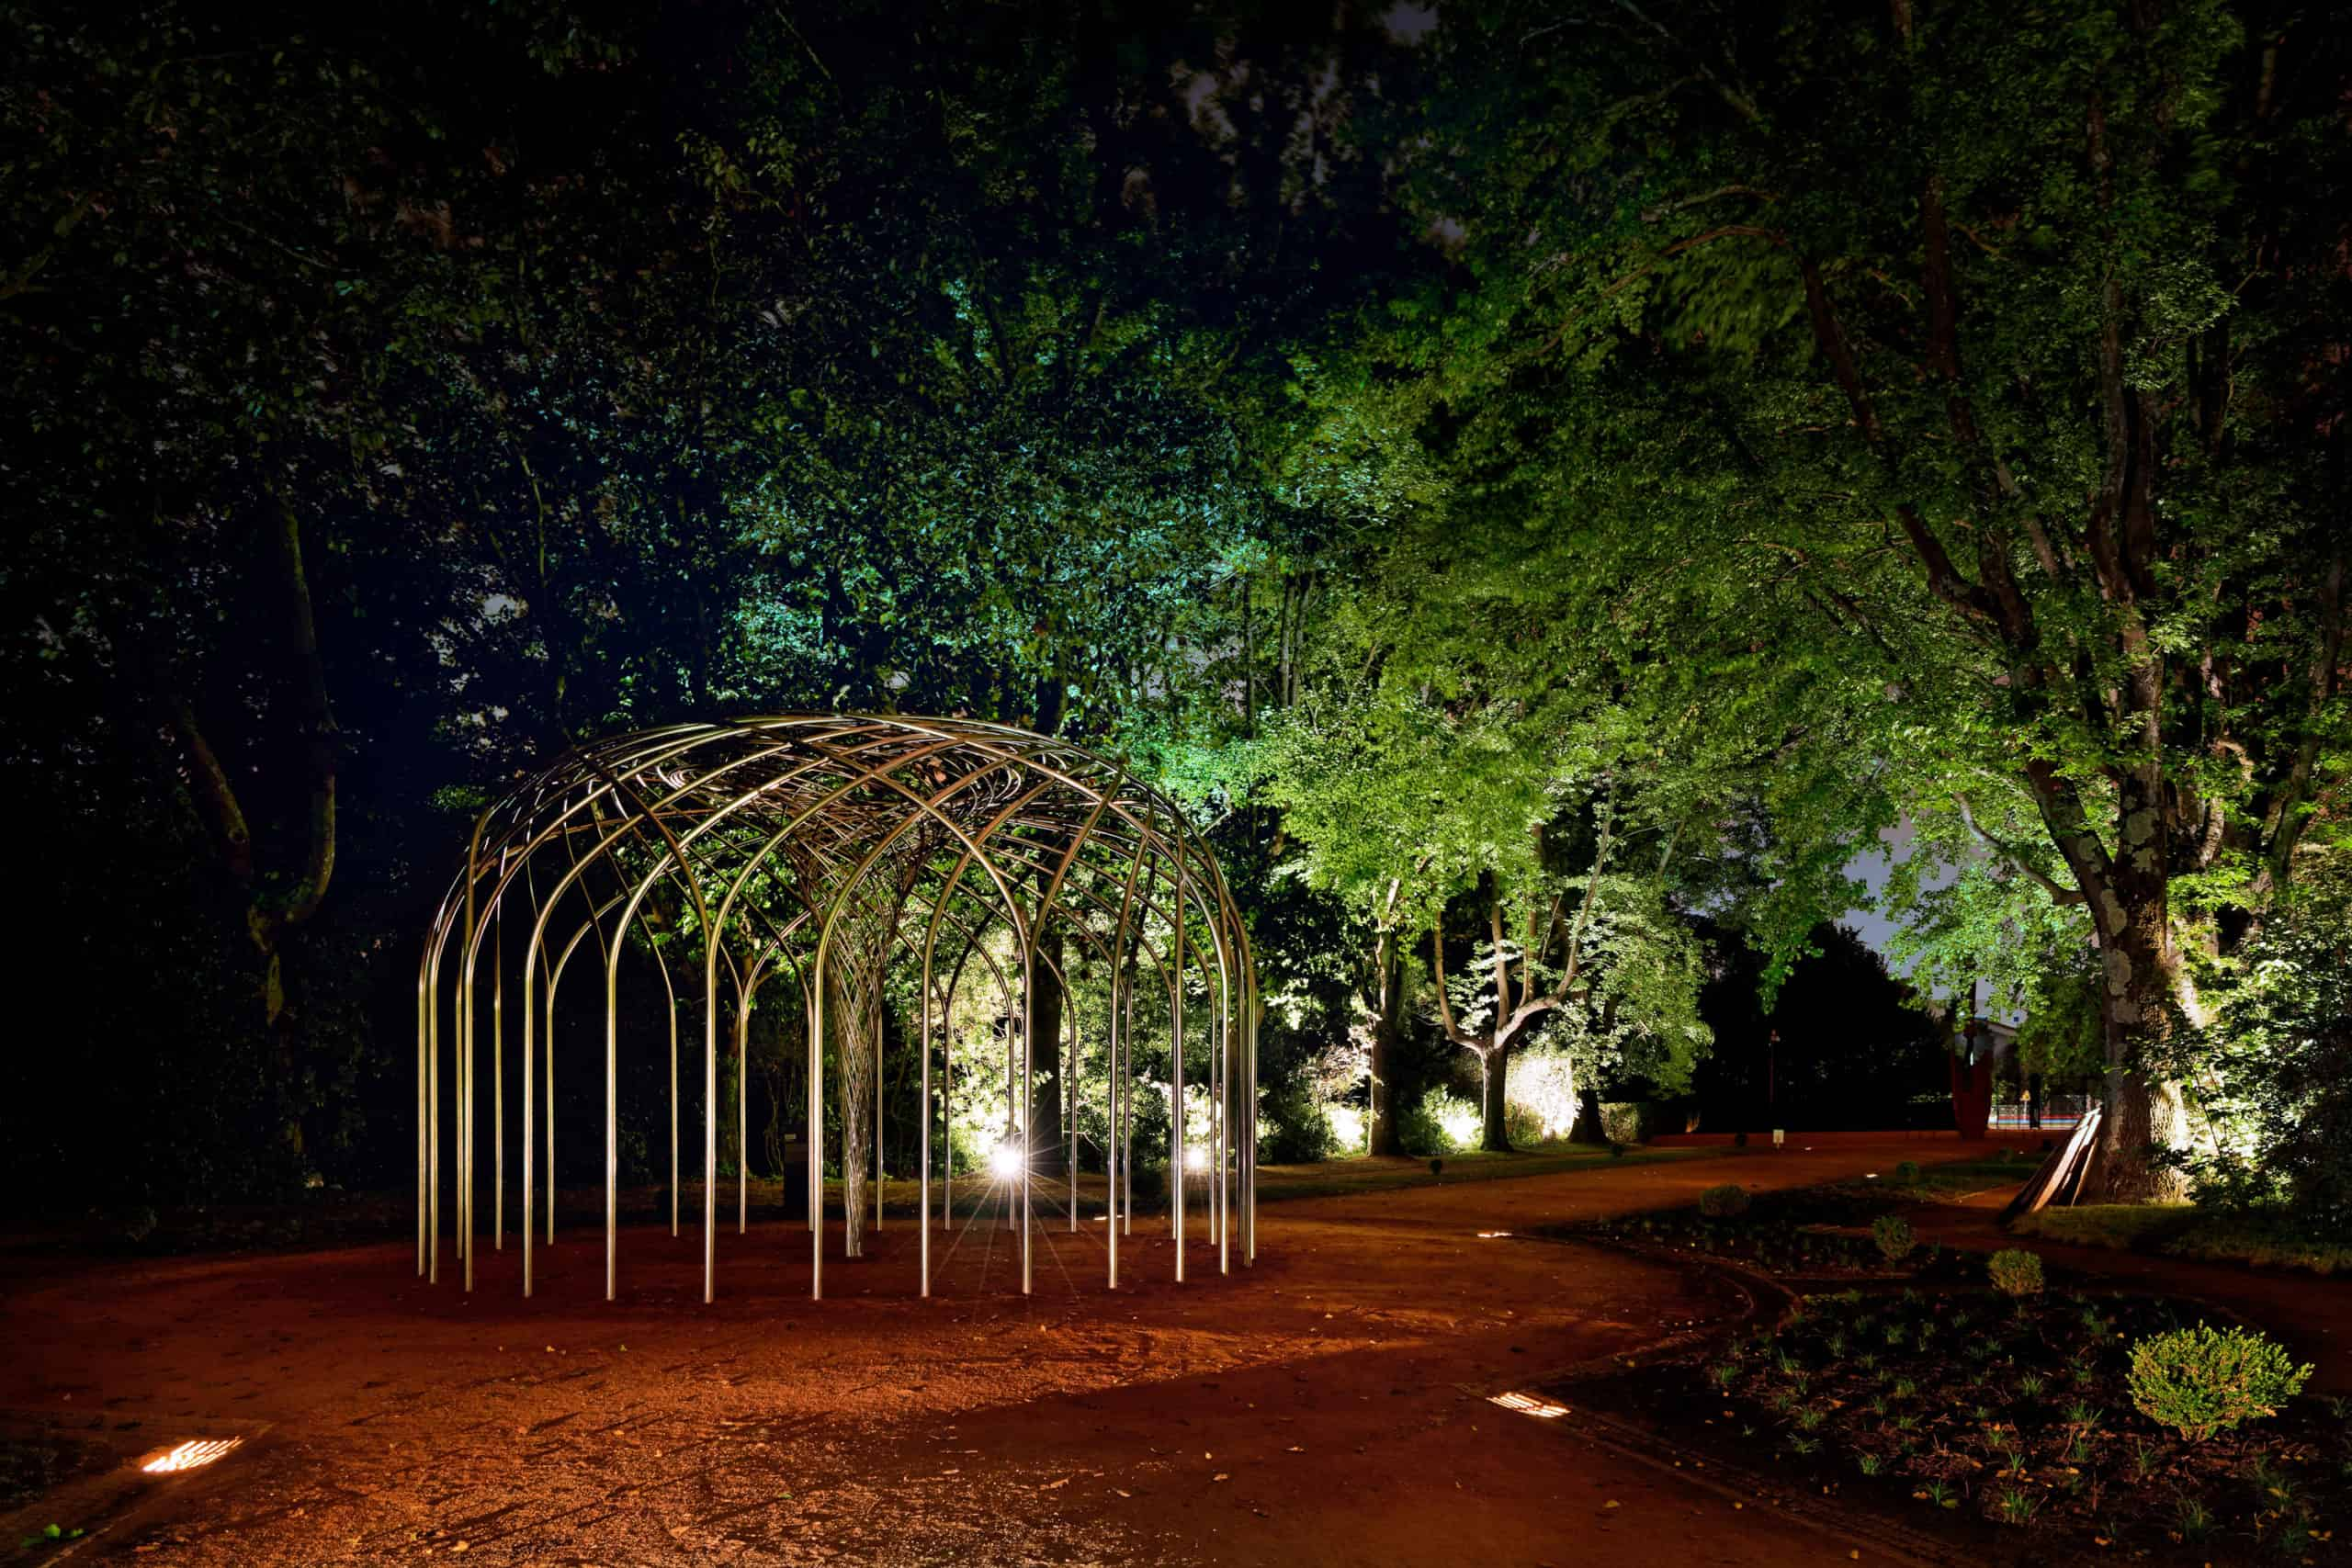 %22Olafur Eliasson: Y/our future is now%22 - exhibition, The Serralves Museum of Contemporary Art, © Andre Delayhe